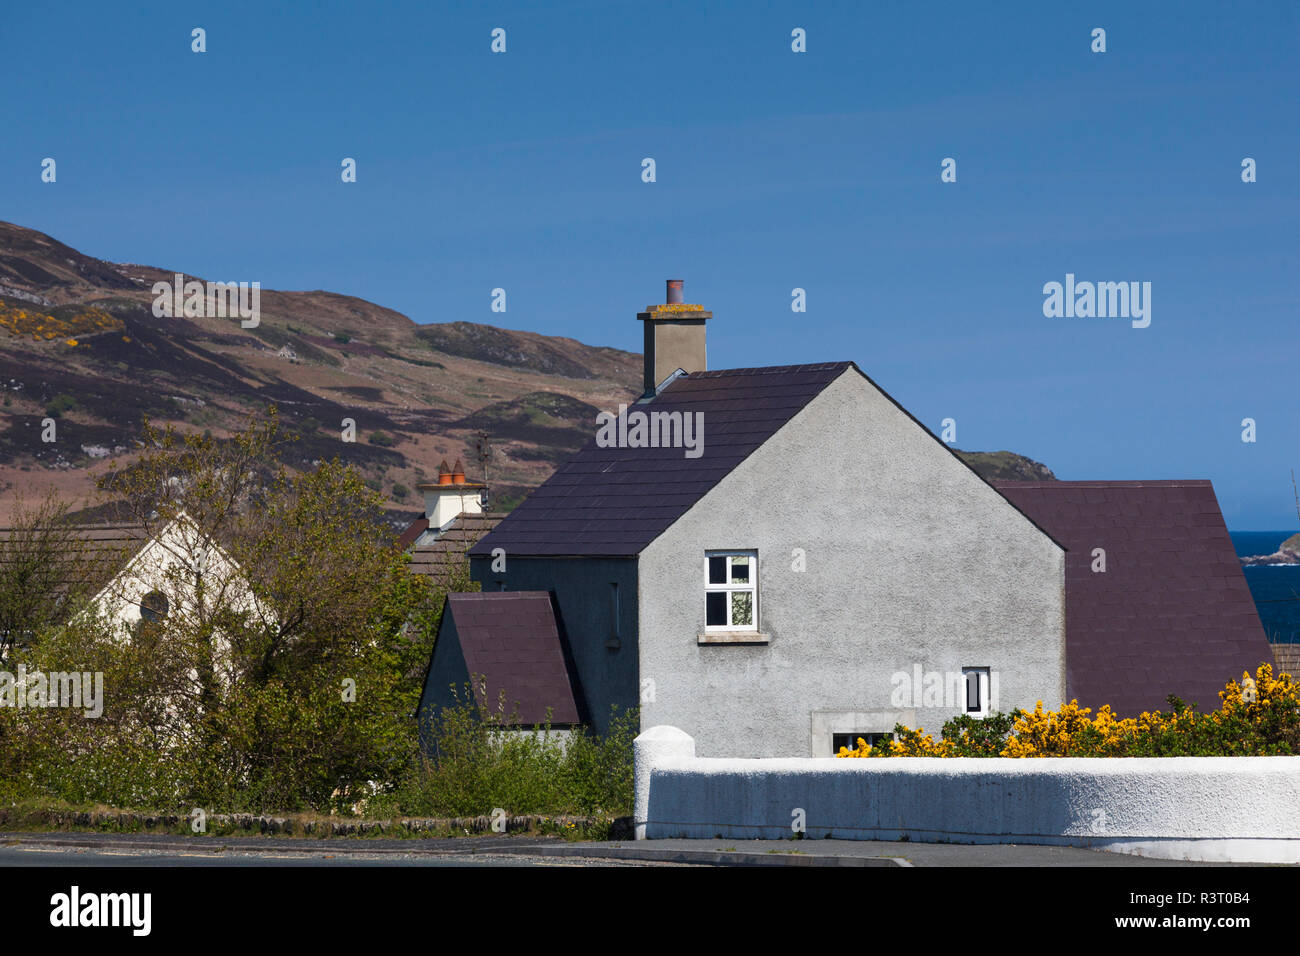 Ireland, County Donegal, Dunfanaghy, town view - Stock Image